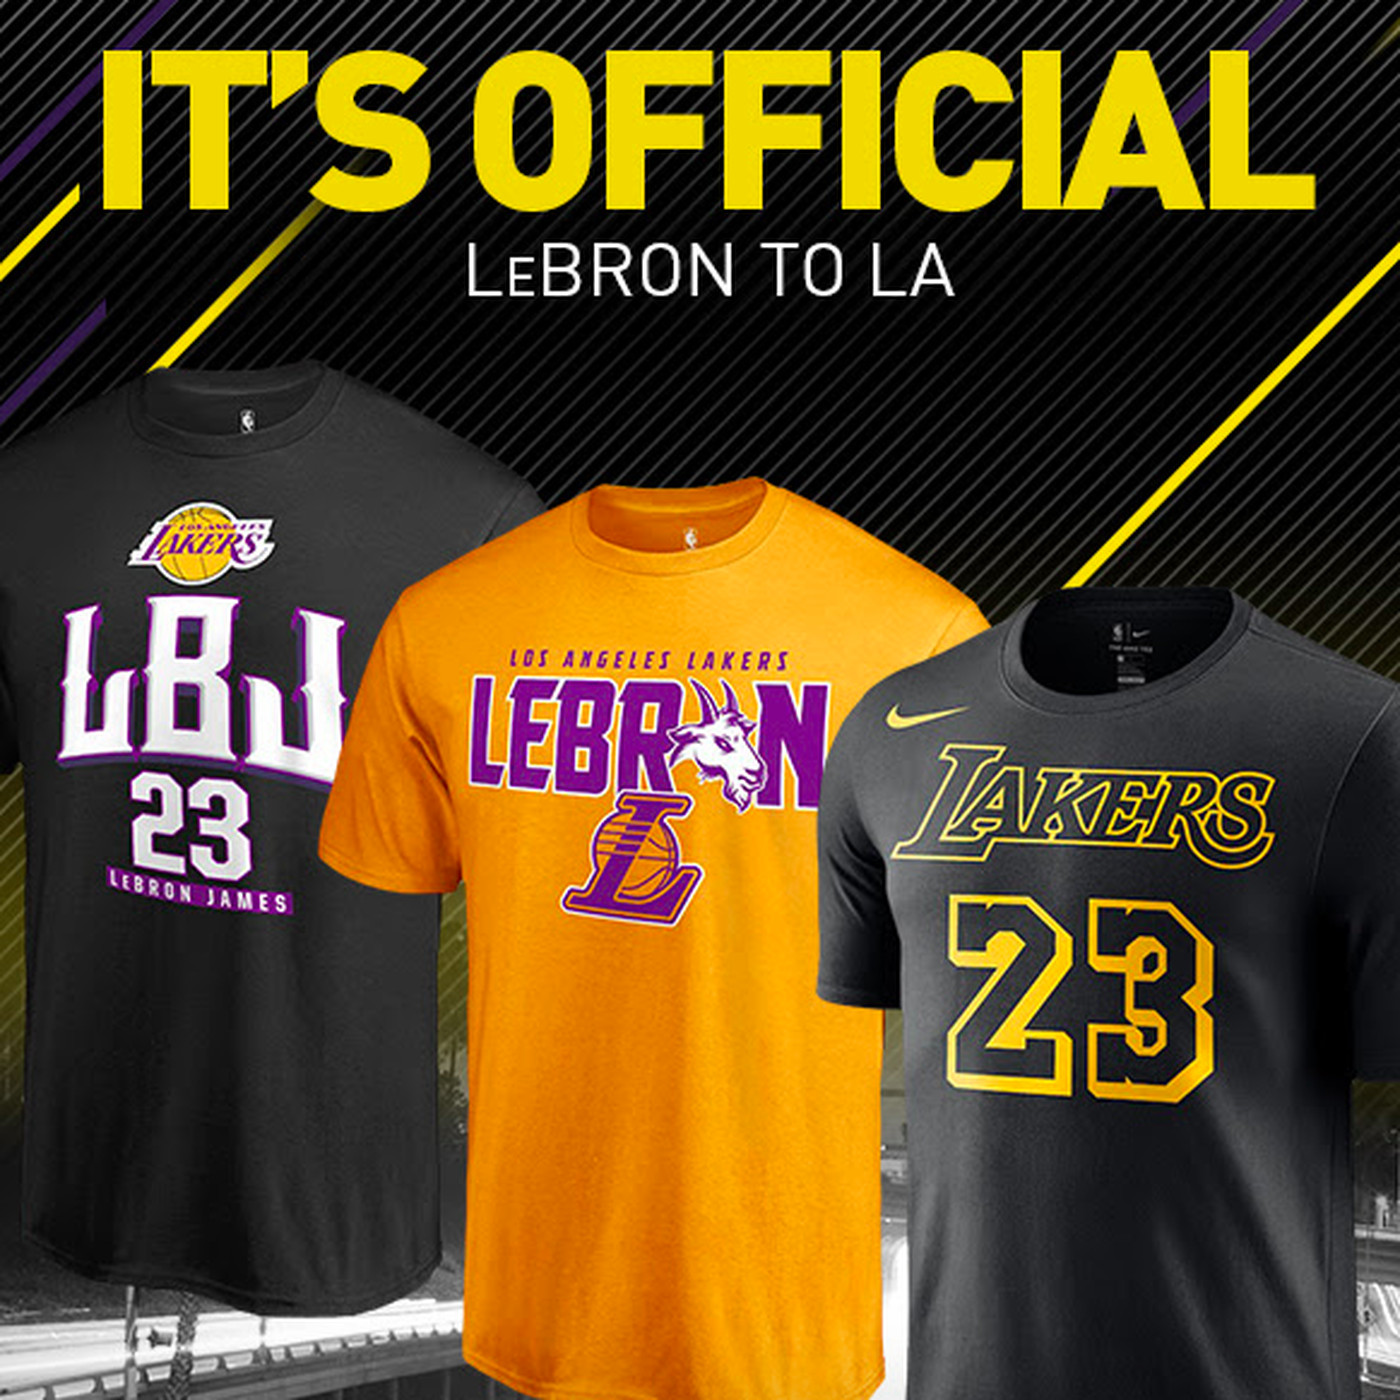 save off c9fcc 1ad9f NBA store begins selling LeBron James Lakers gear - Silver ...